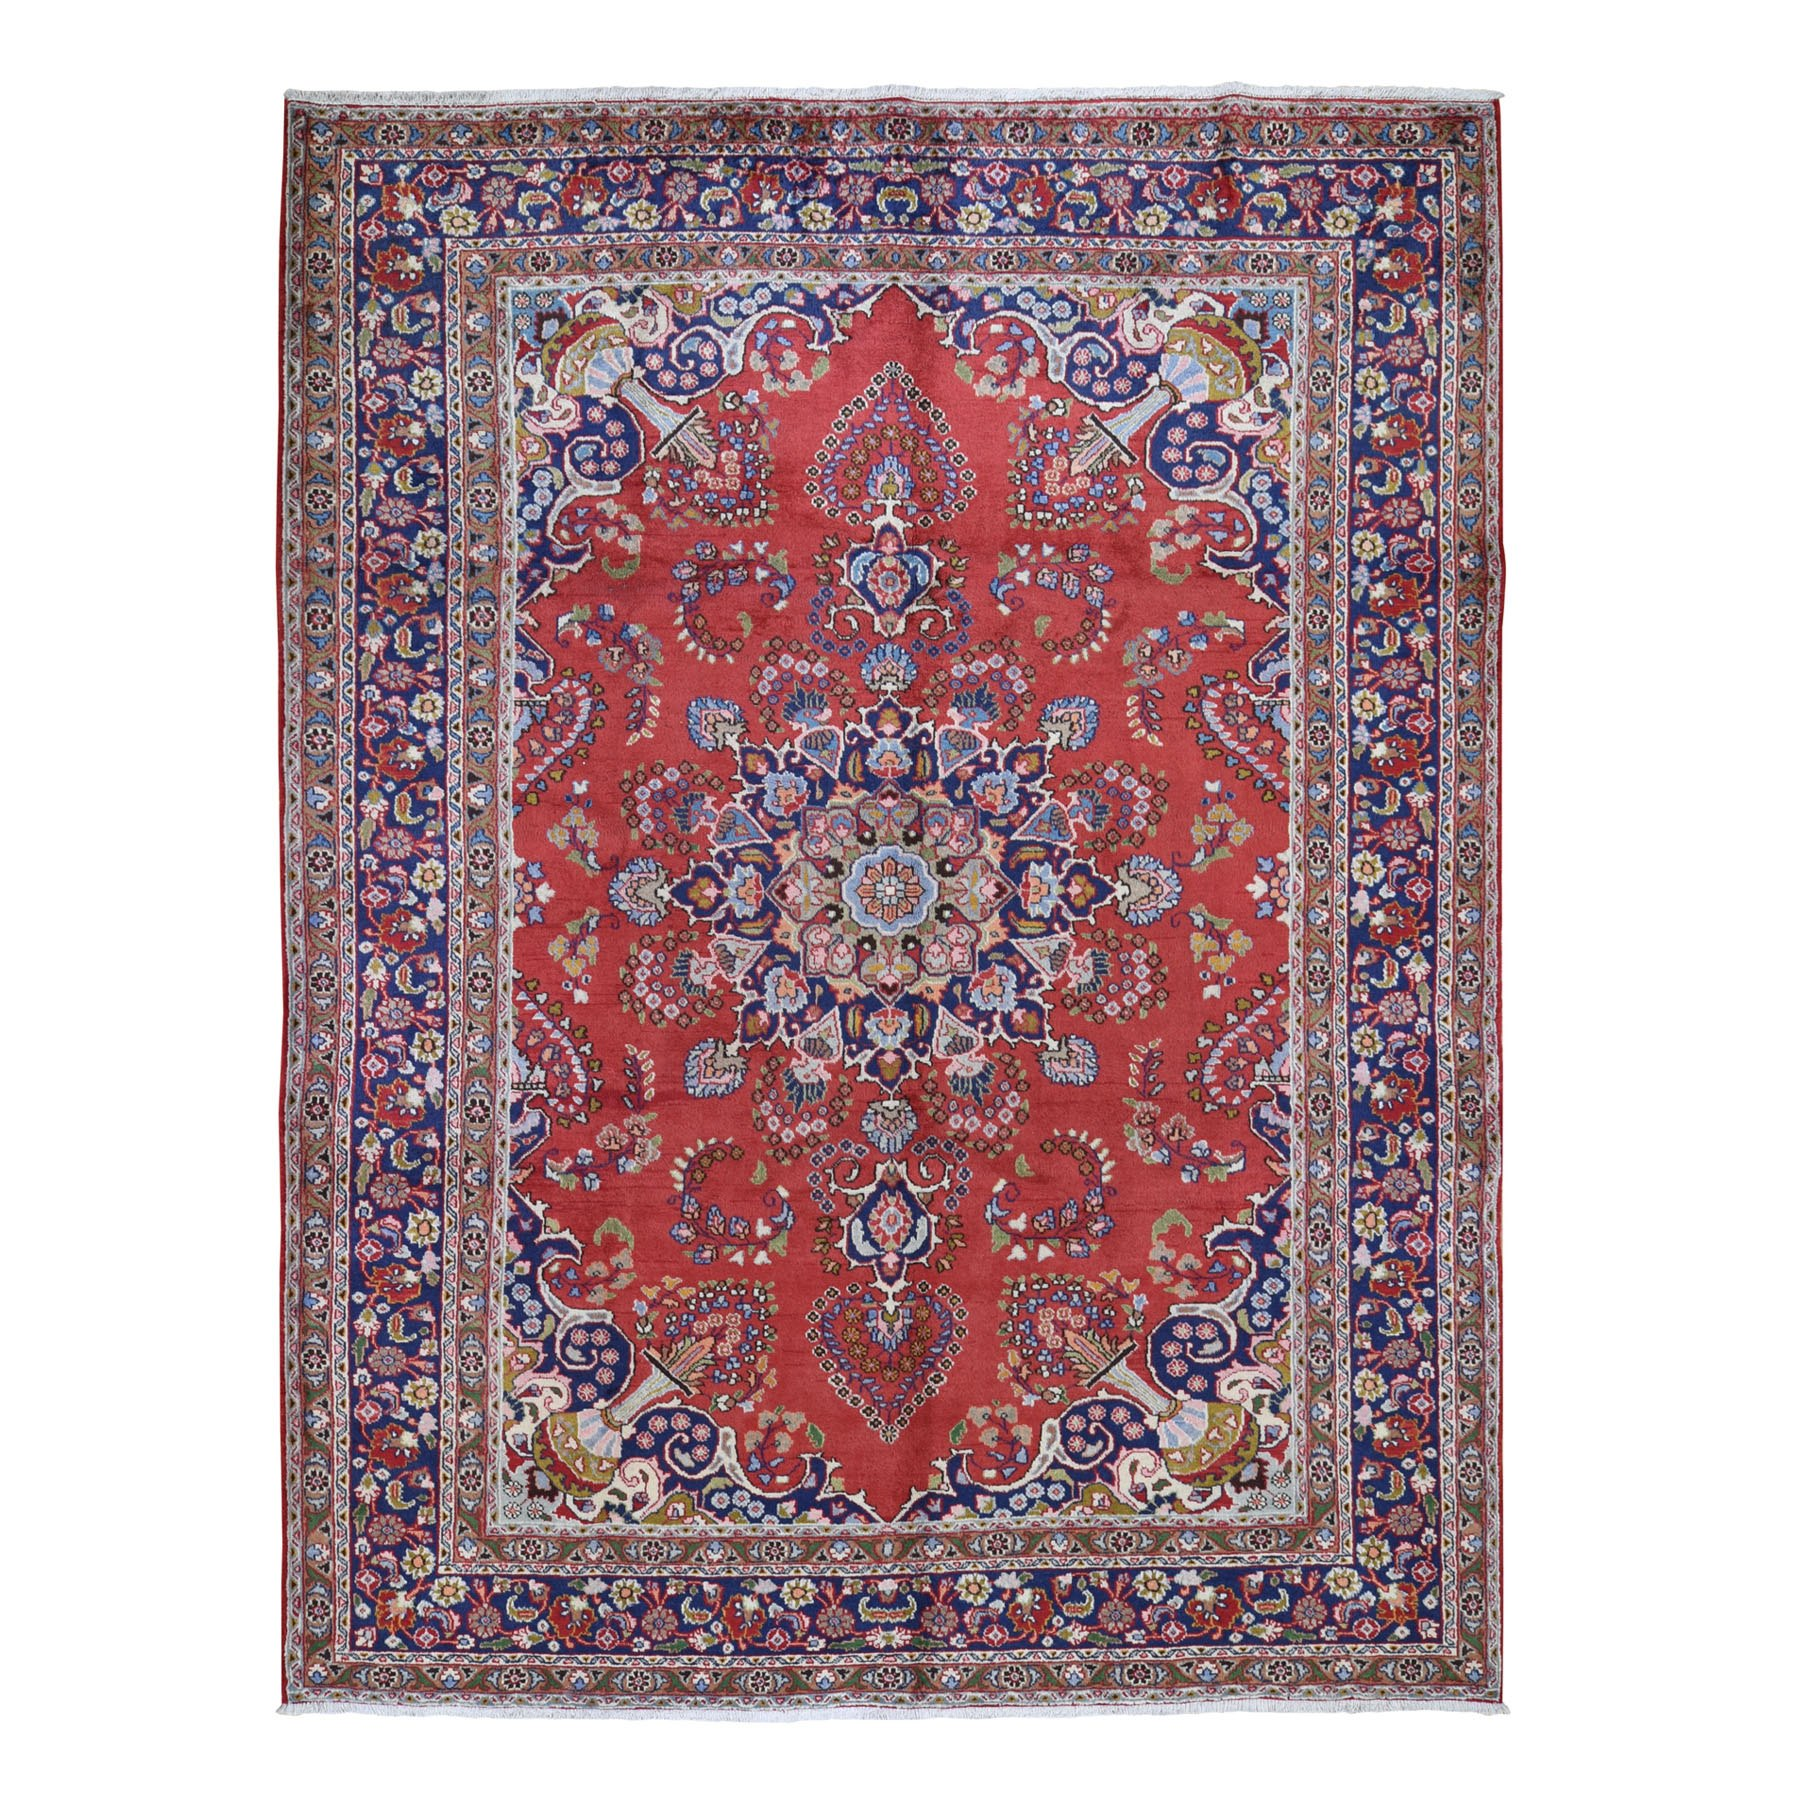 8'X11' Red New Persian Tabriz Pure Wool Full Pile Hand Knotted Oriental Rug moad7e0b